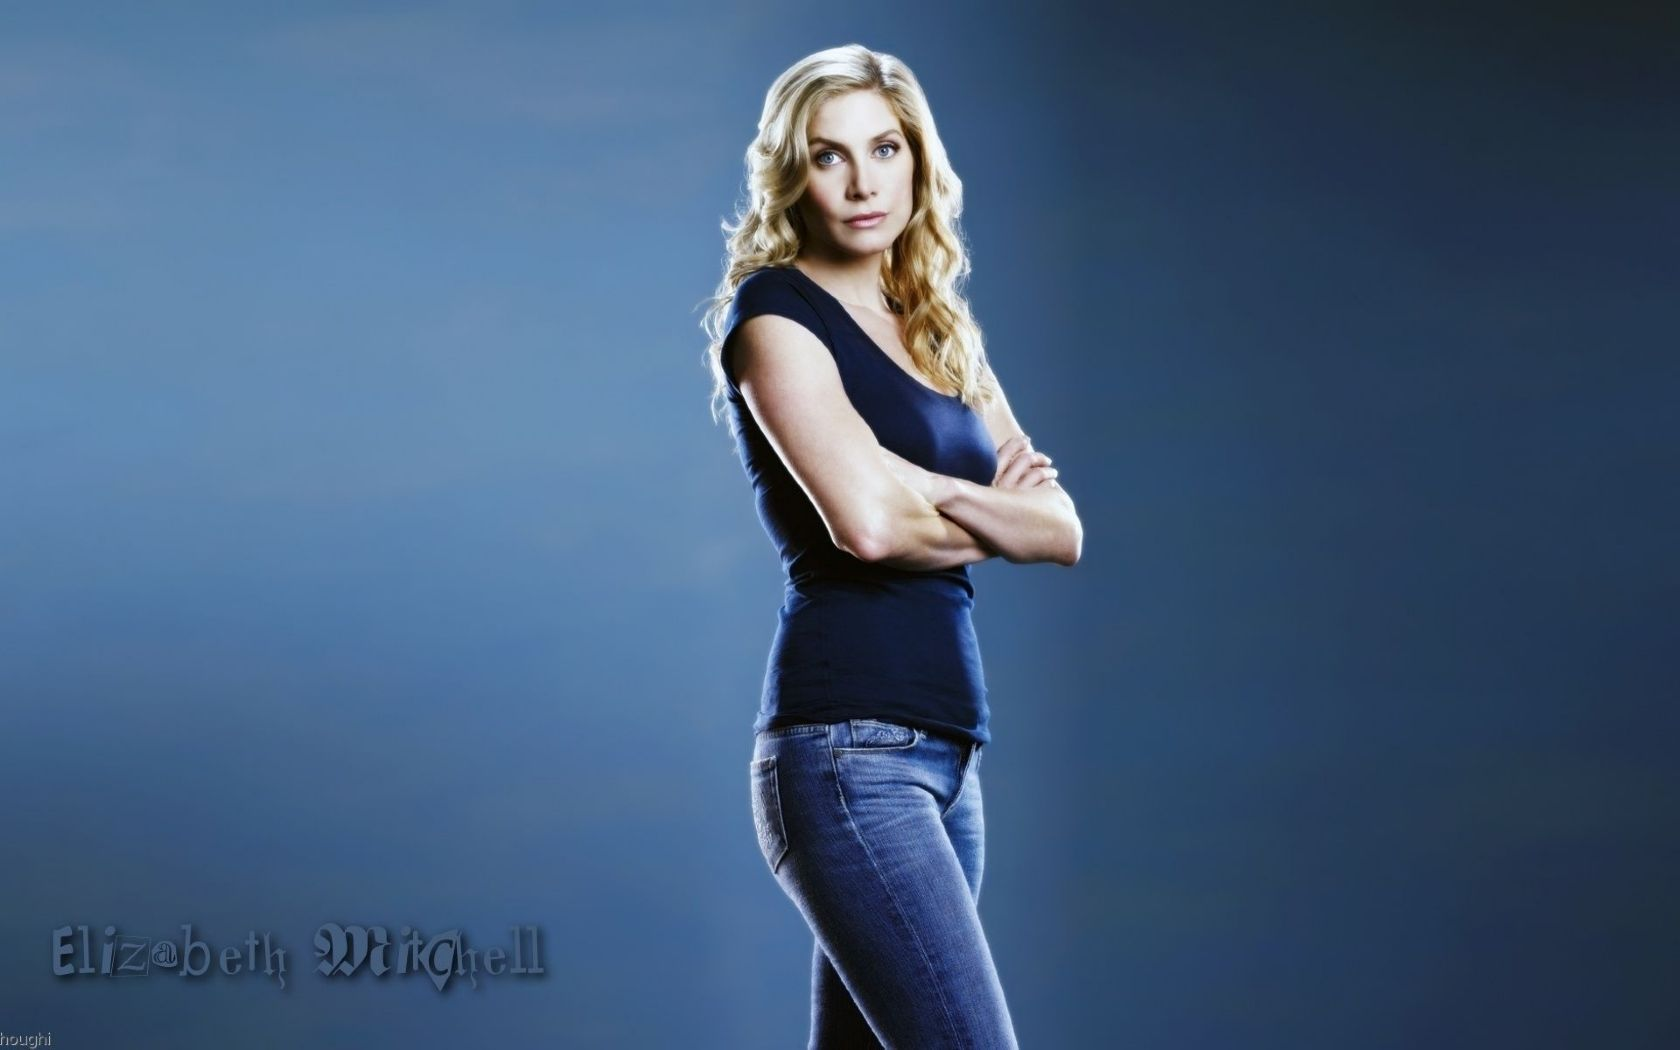 elizabeth mitchell computer hd - photo #9